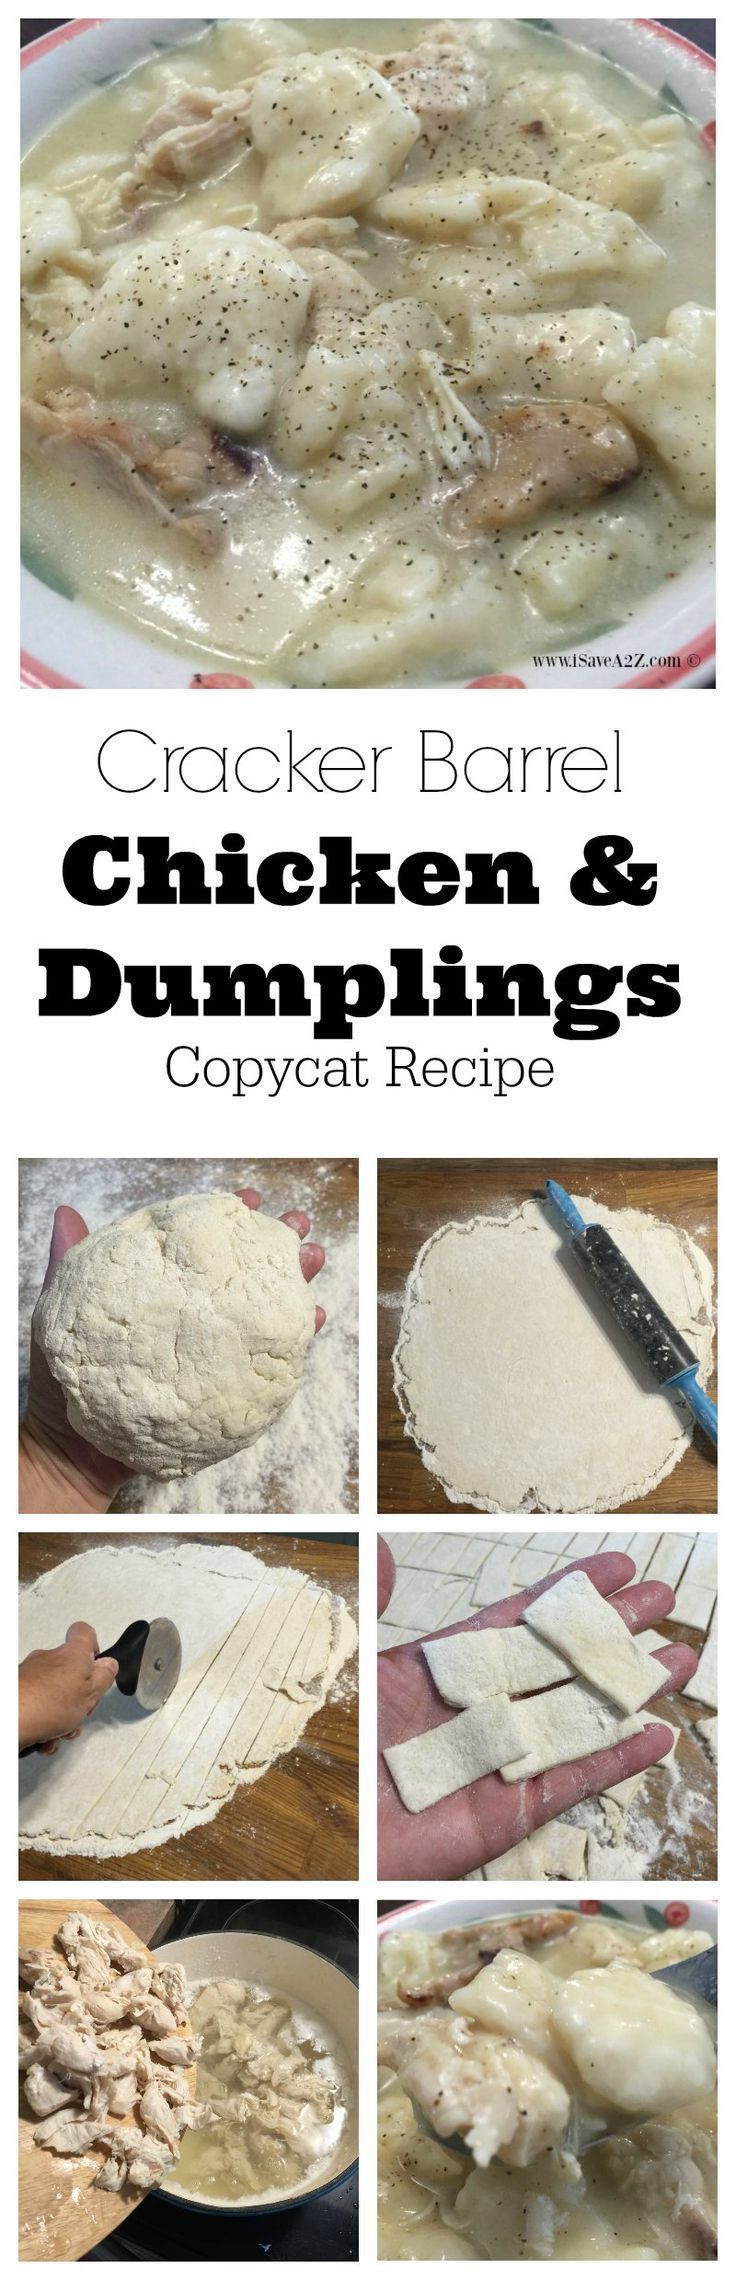 Cracker Barrel Chicken and Dumplings Copycat Recipe - http://iSaveA2Z.com